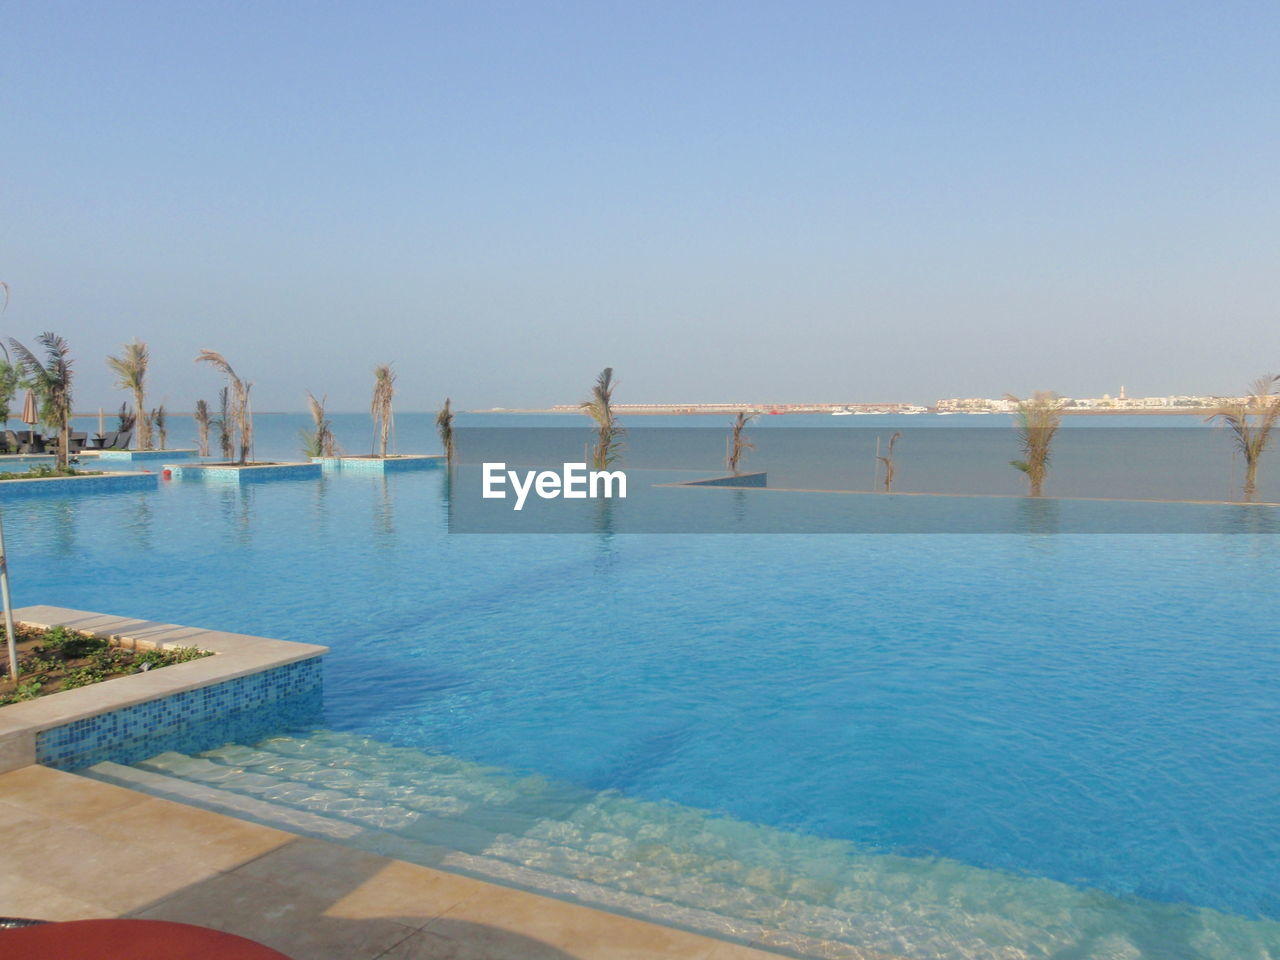 water, sky, clear sky, nature, scenics - nature, day, swimming pool, pool, sea, tranquil scene, copy space, tranquility, blue, beauty in nature, waterfront, no people, reflection, travel, outdoors